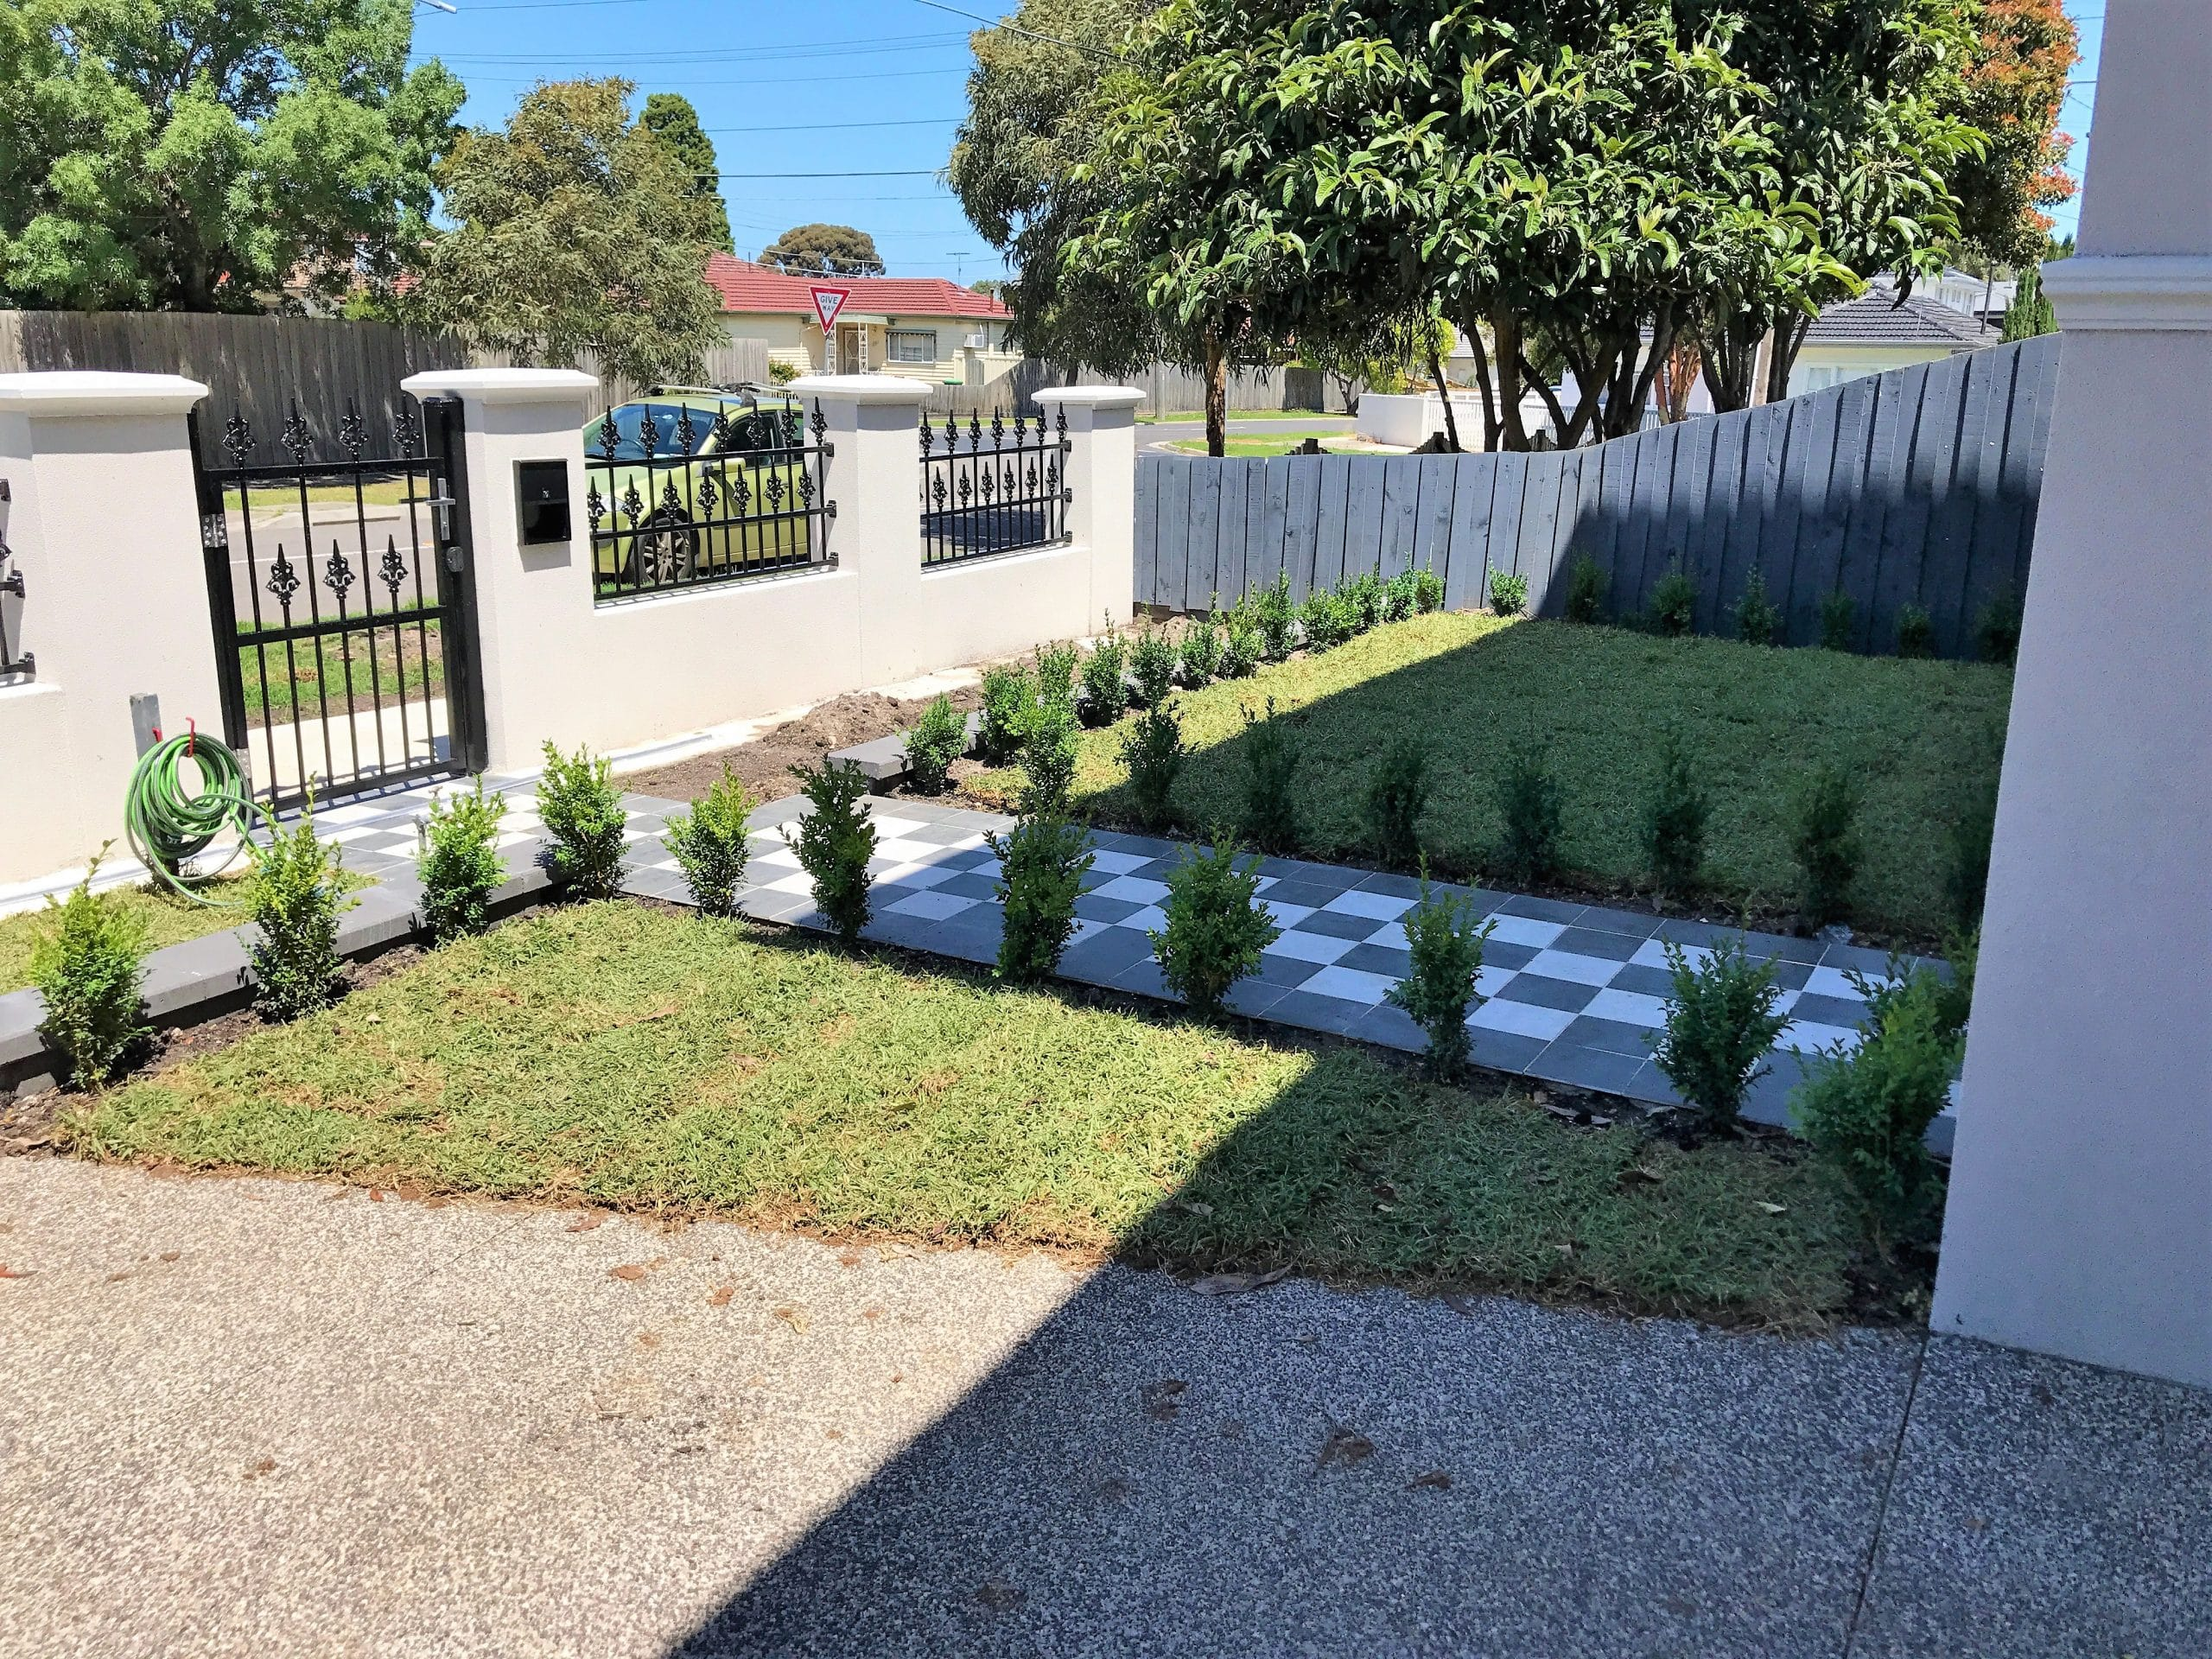 L197 - Front Landscaping with Tiles View 2